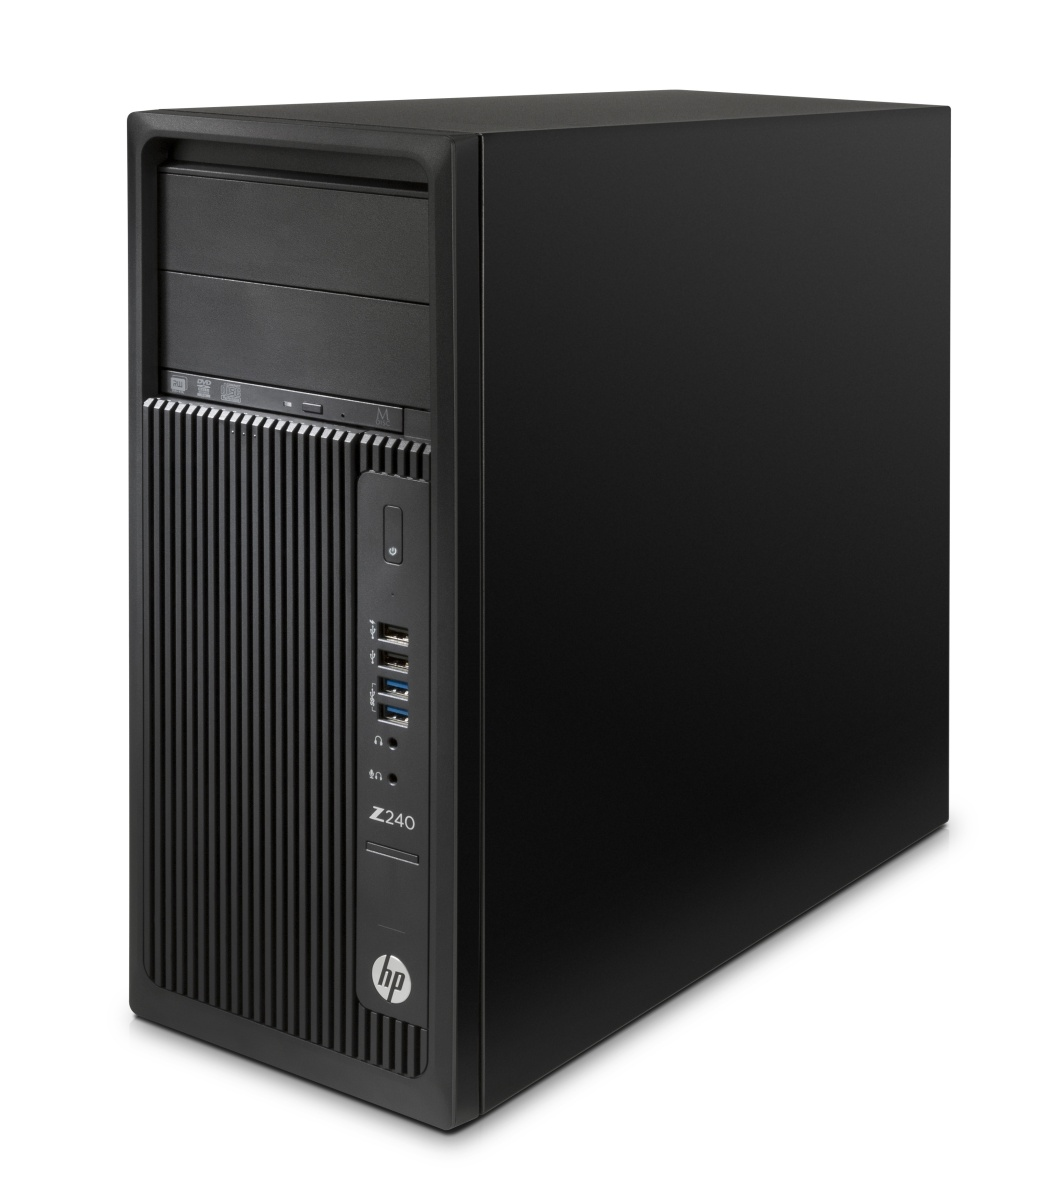 "HP Z240 TWR Intel i7-6700 3.4GHz/32GB DDR4-2133 nECC (2x16GB) /512GB SSD 2.5"" /Intel HD GFX 530 /Linux"